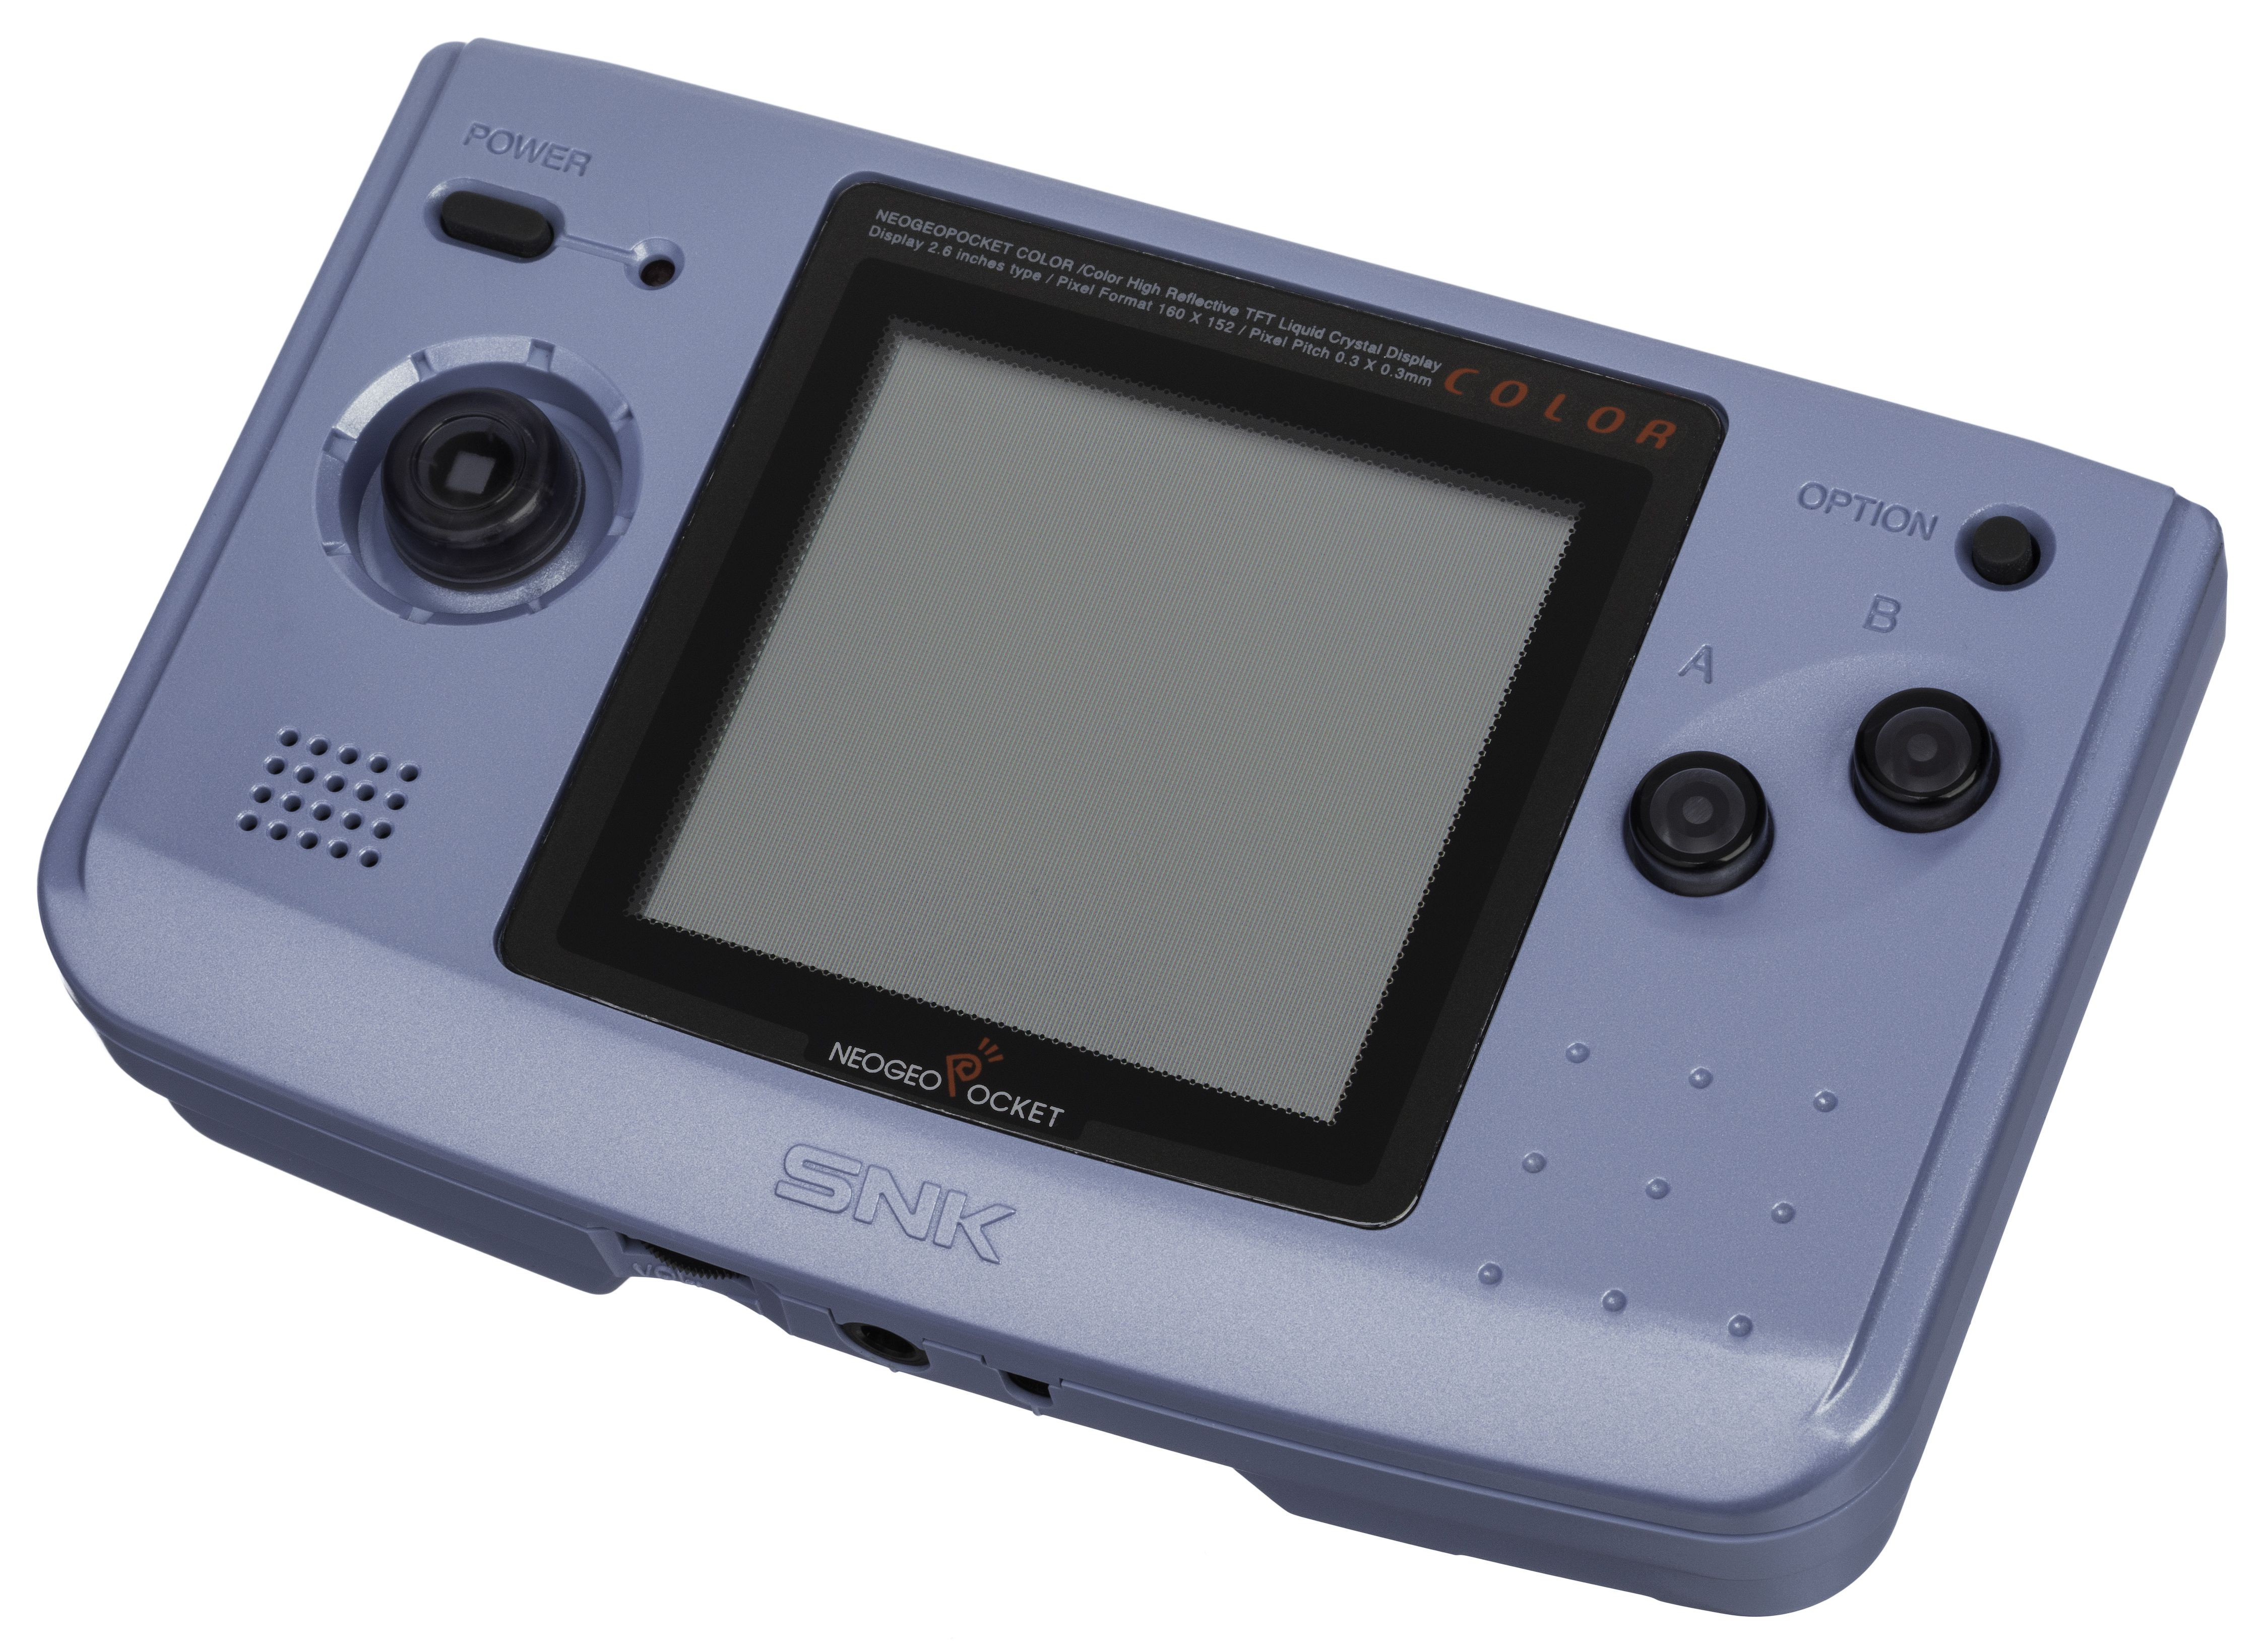 Gameboy color roms for free - Gameboy Color Roms For Free 55